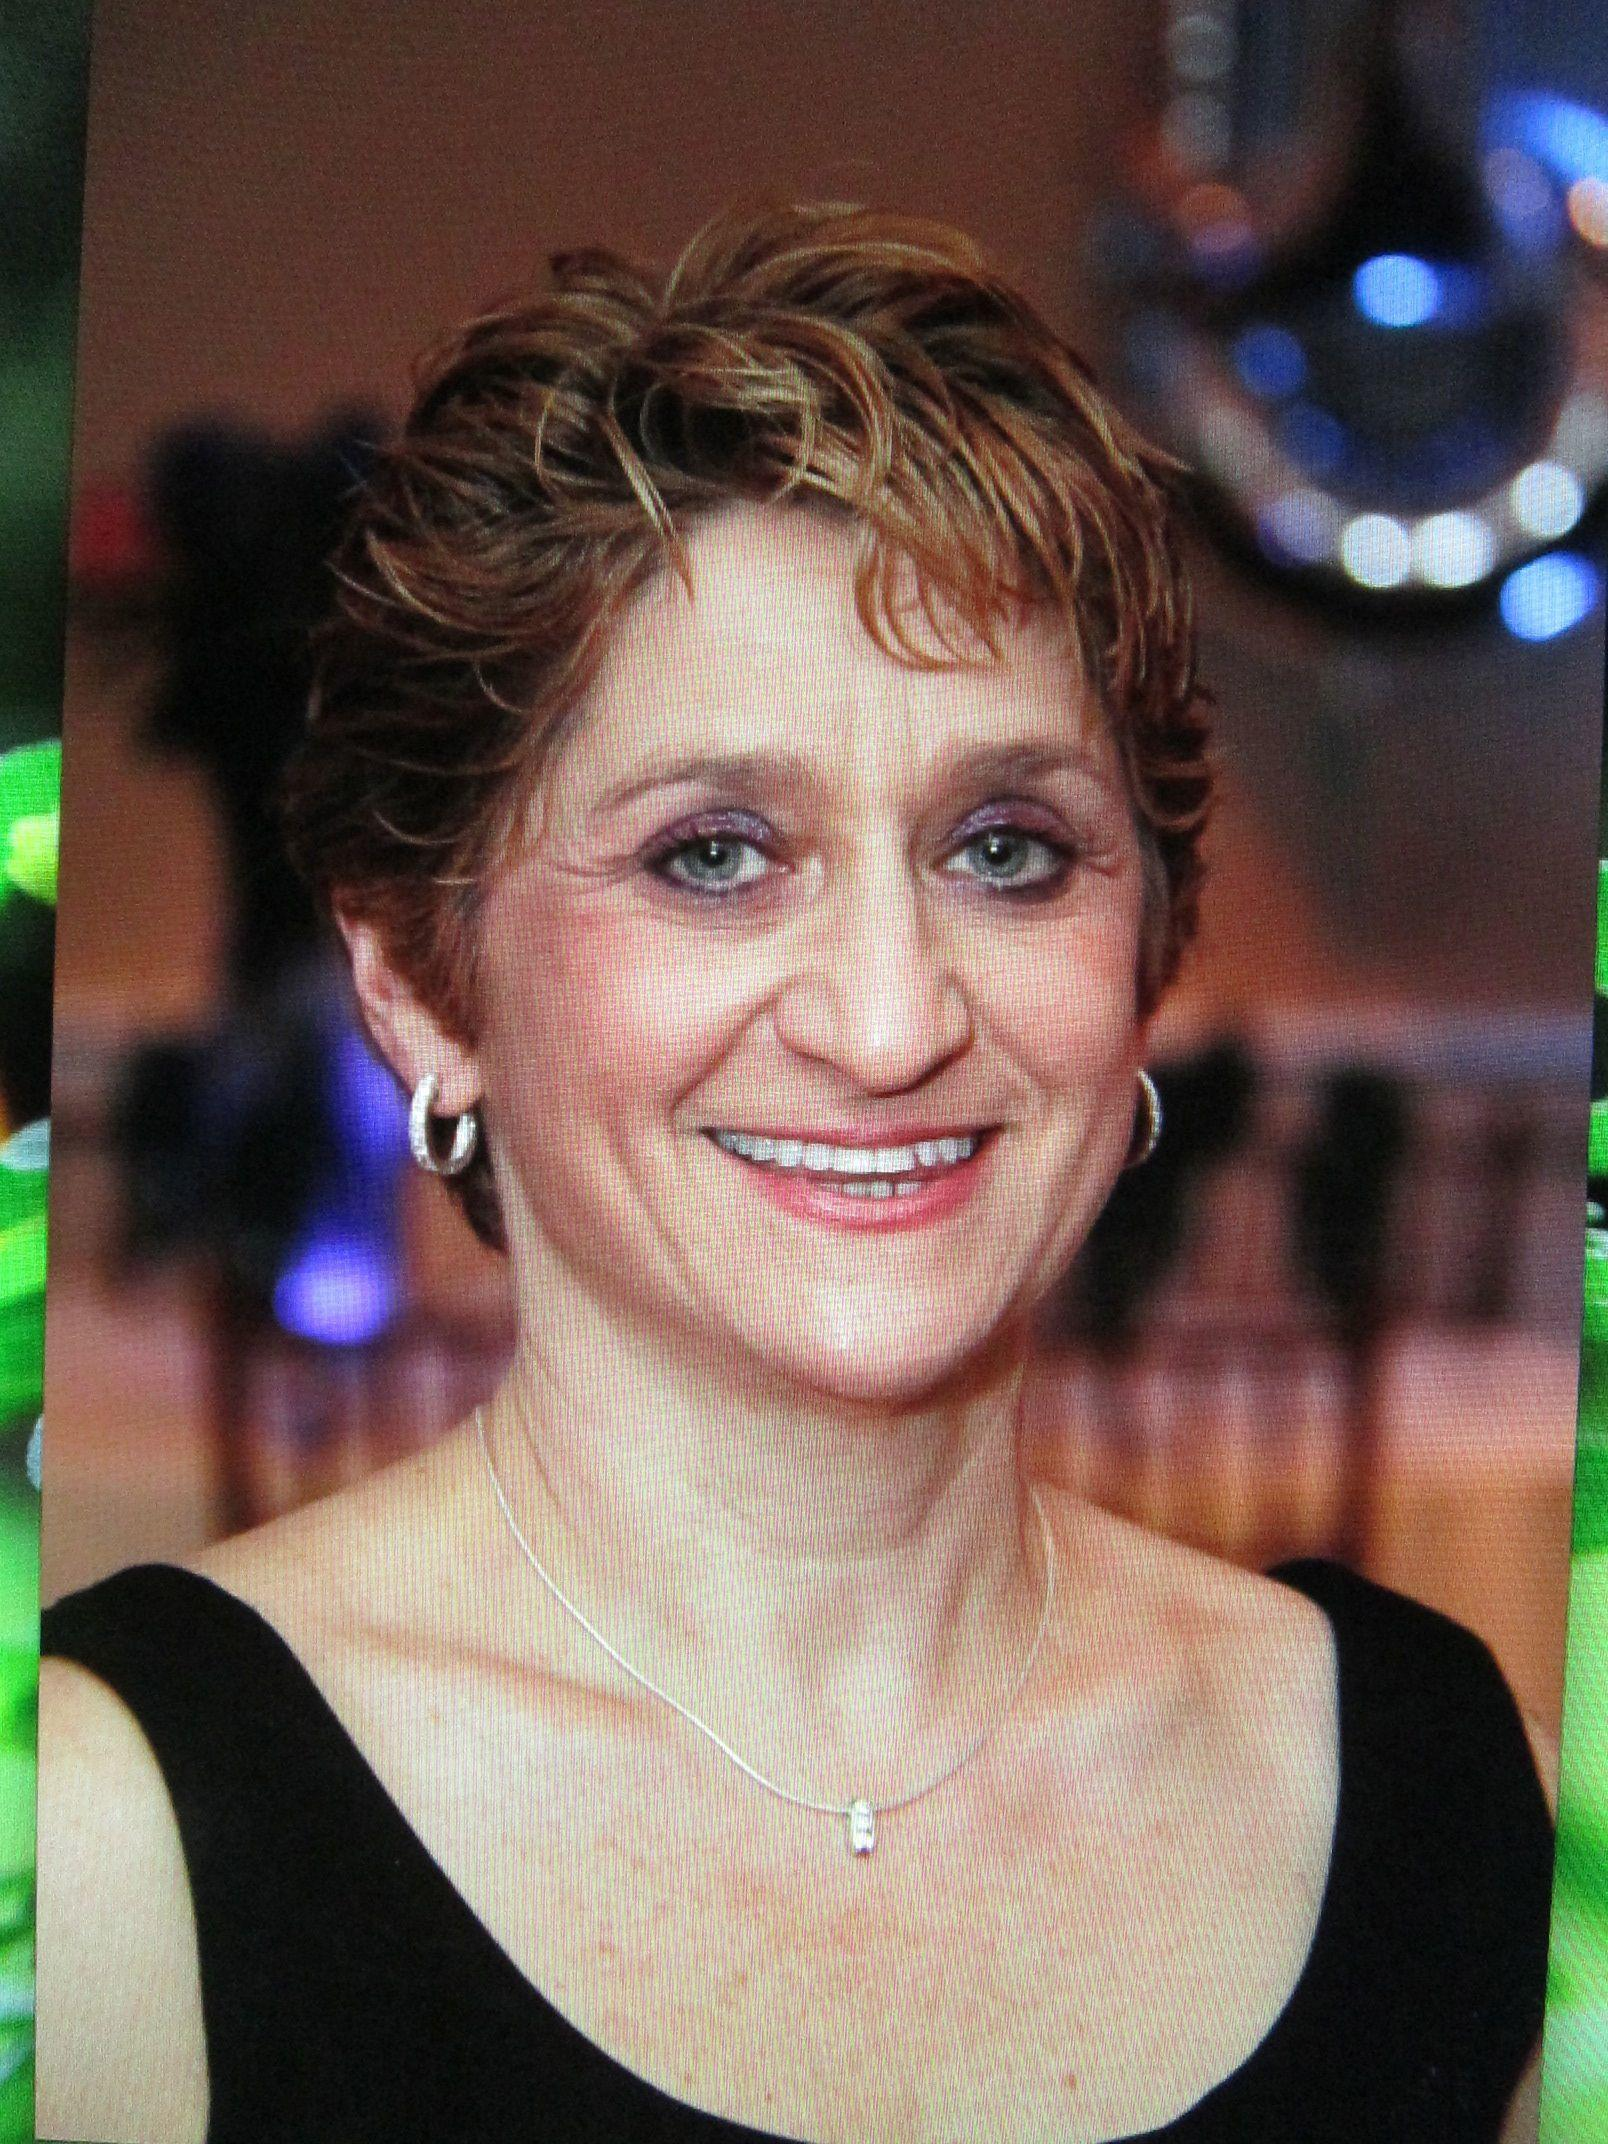 jewish singles in pleasantville Single & smart et cetera new rabbi appointed at pleasantville community synagogue july 14 the founder of the jewish renewal movement.